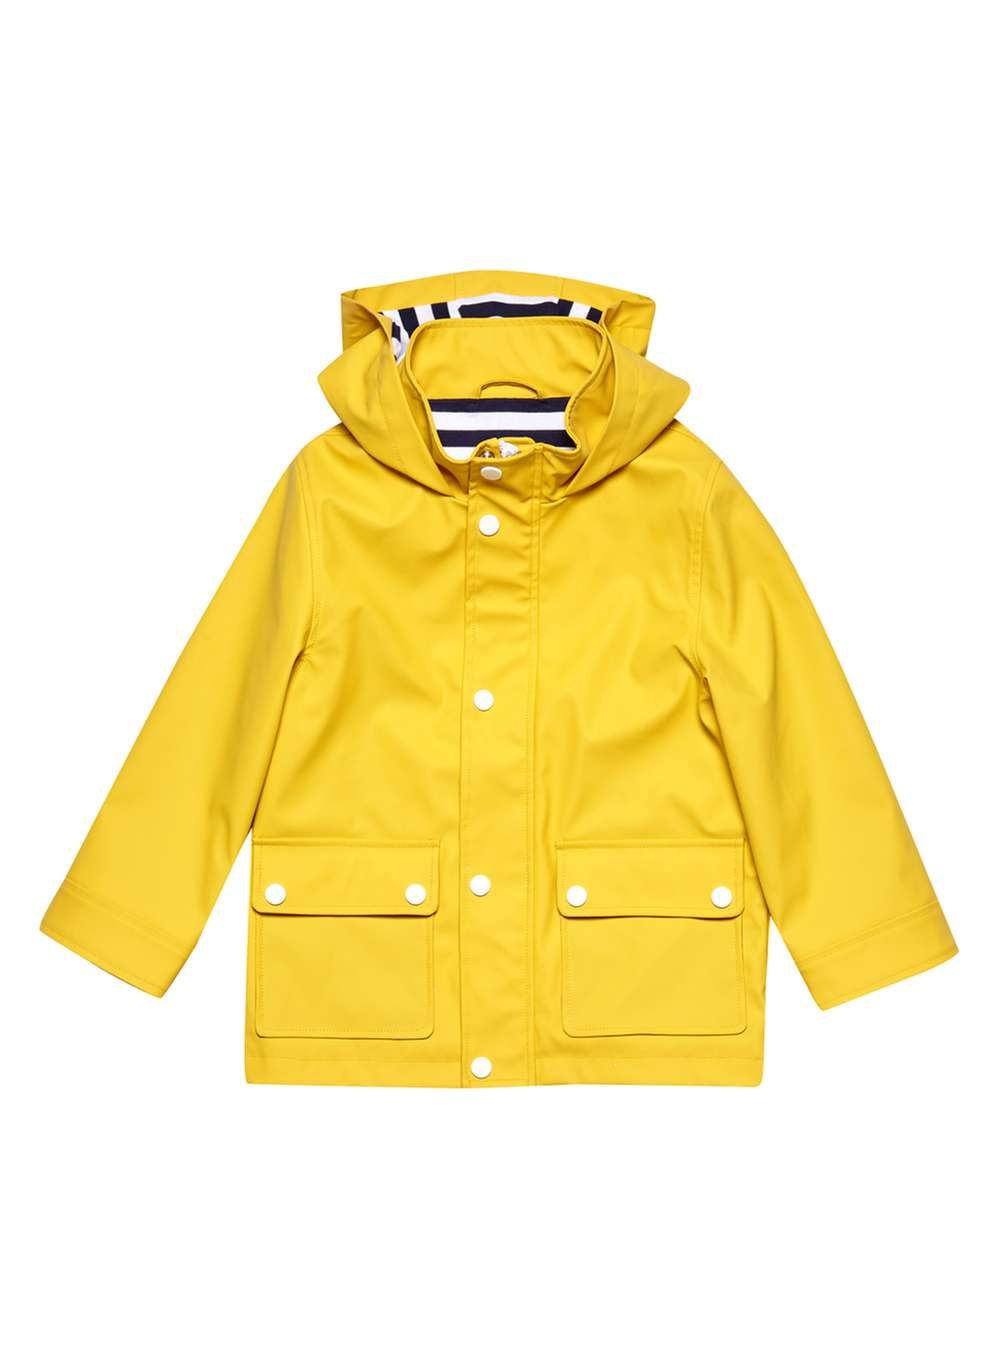 7. Yellow Hooded Rain Mac